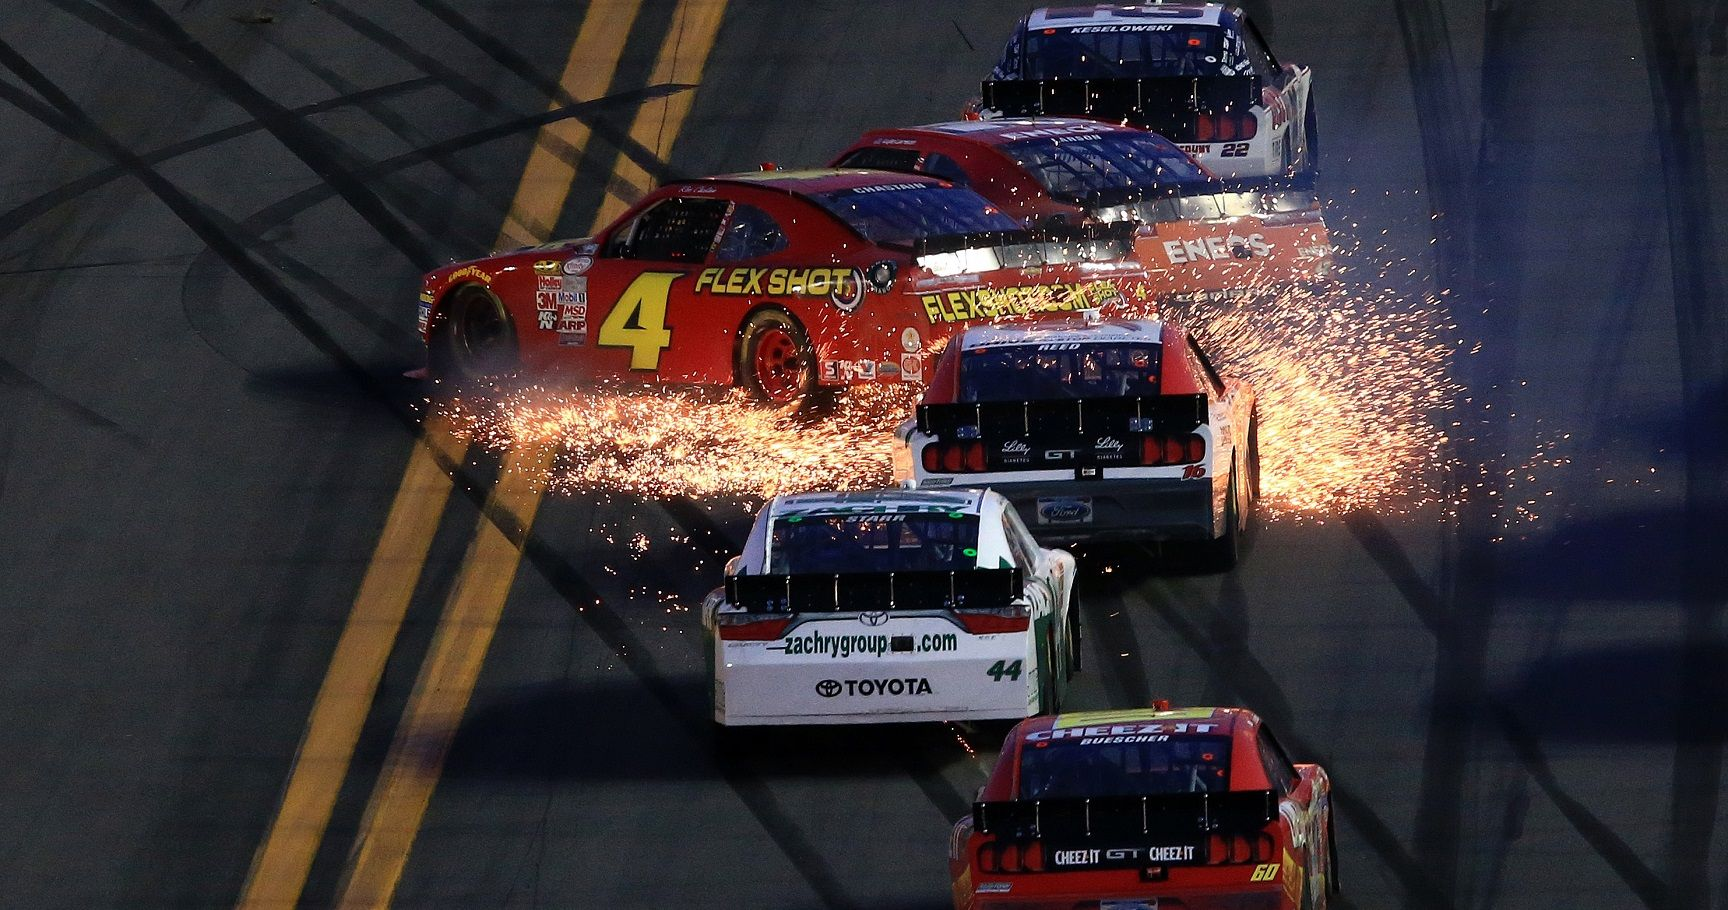 The 10 Dirtiest Drivers in Racing History